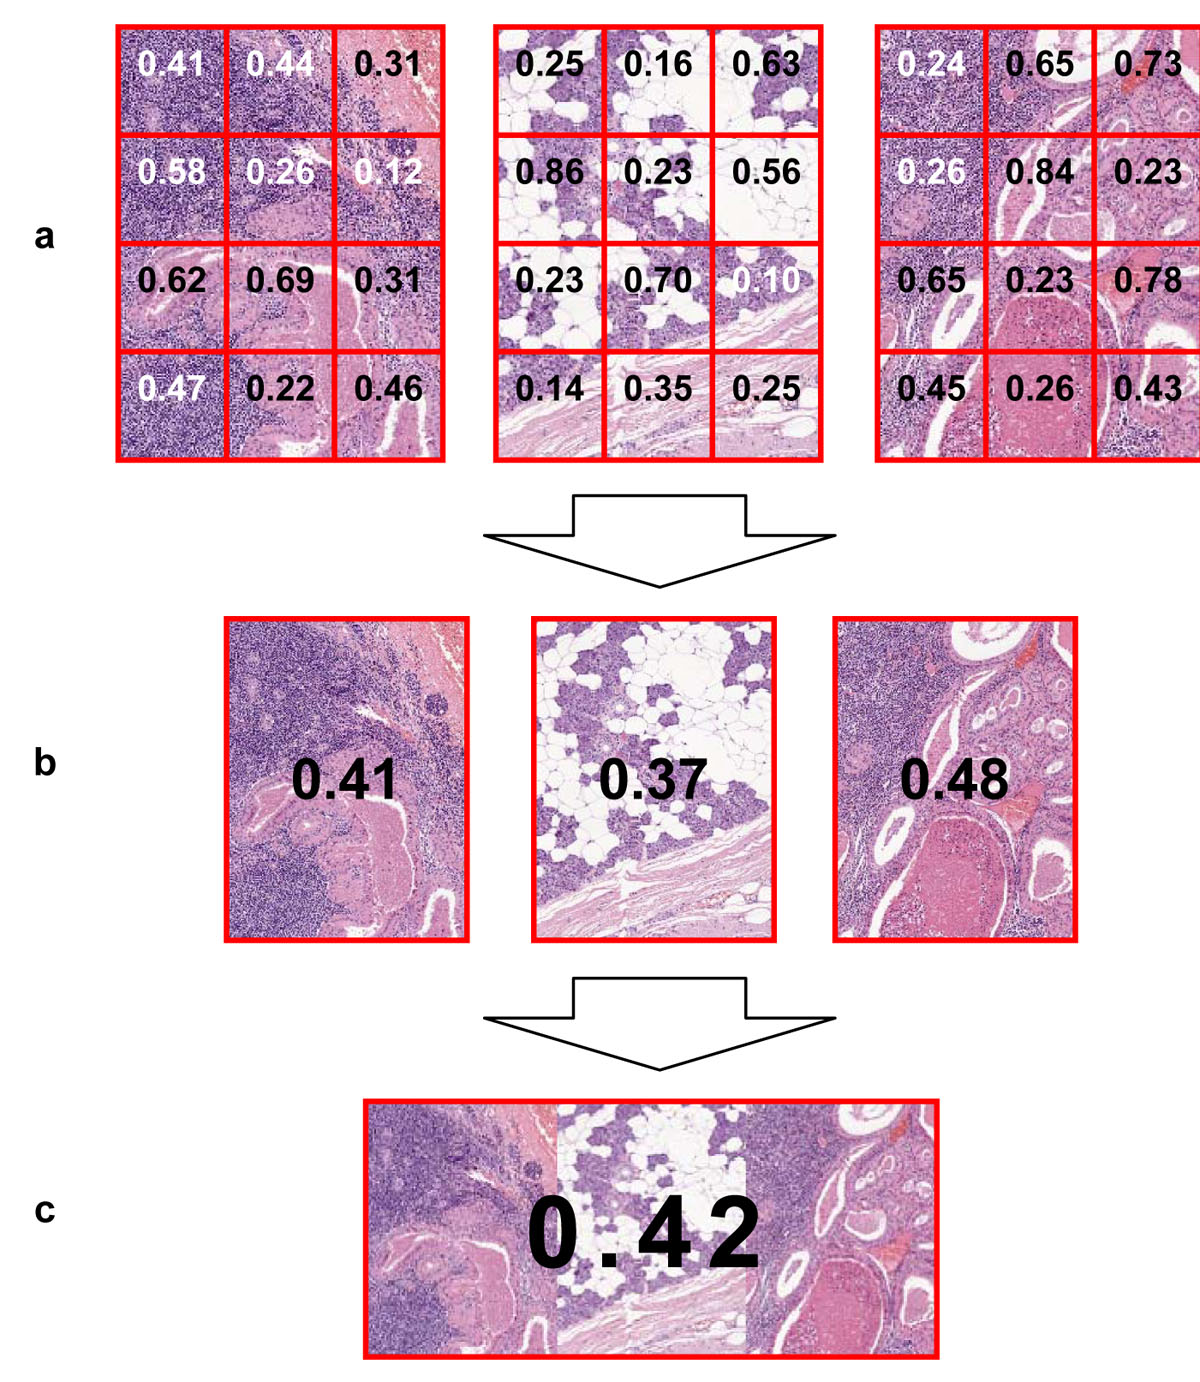 https://static-content.springer.com/image/art%3A10.1186%2F1746-1596-6-S1-S14/MediaObjects/13000_2011_Article_384_Fig6_HTML.jpg